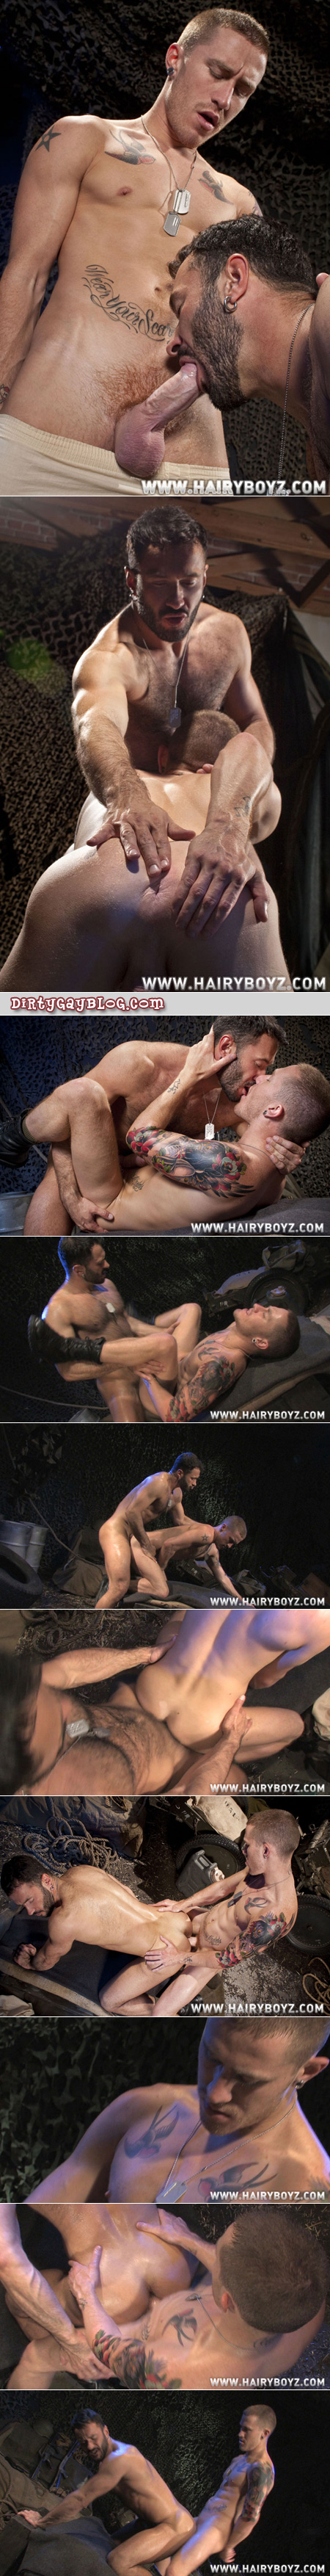 Hairy military guy has clandestine gay sex with his bunkmate.